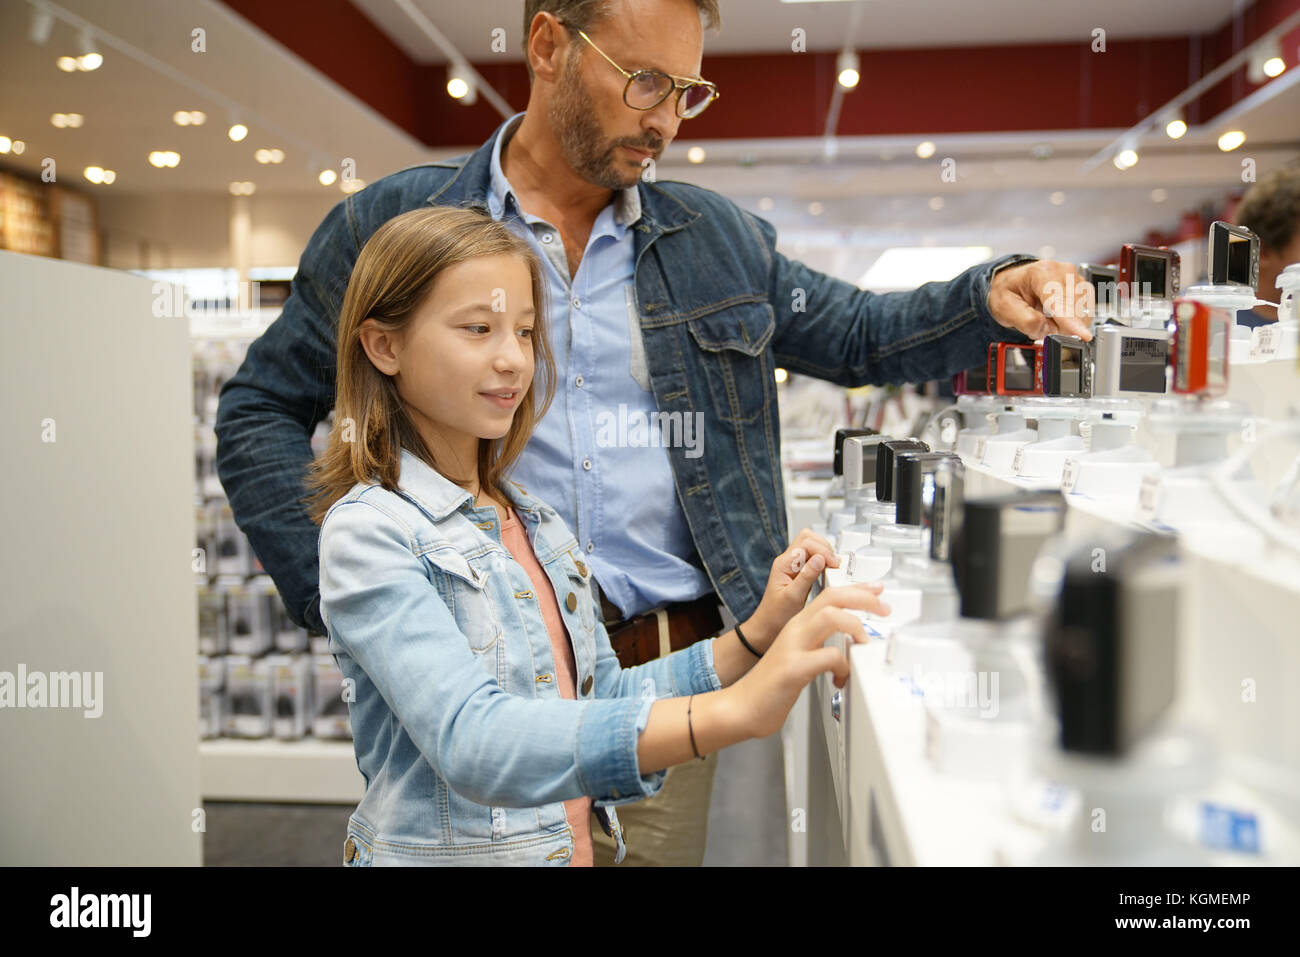 Homme avec enfant regardant dans les compacts au magasin multimédia Photo Stock